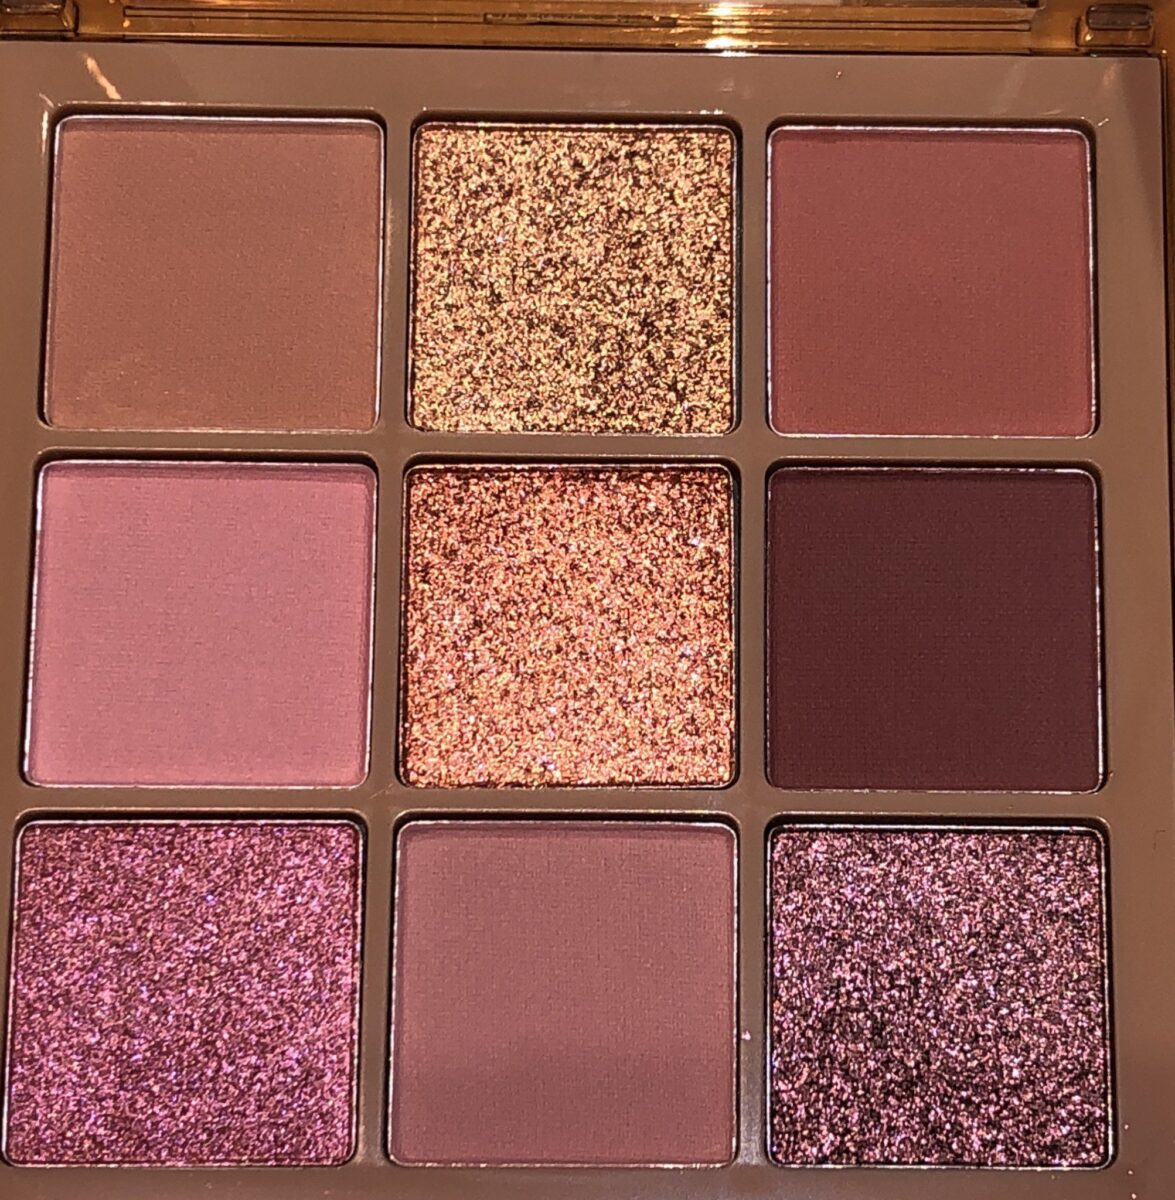 HUDA NUDE OBSESSIONS EYE PALETTE IN MEDIUM SHADES